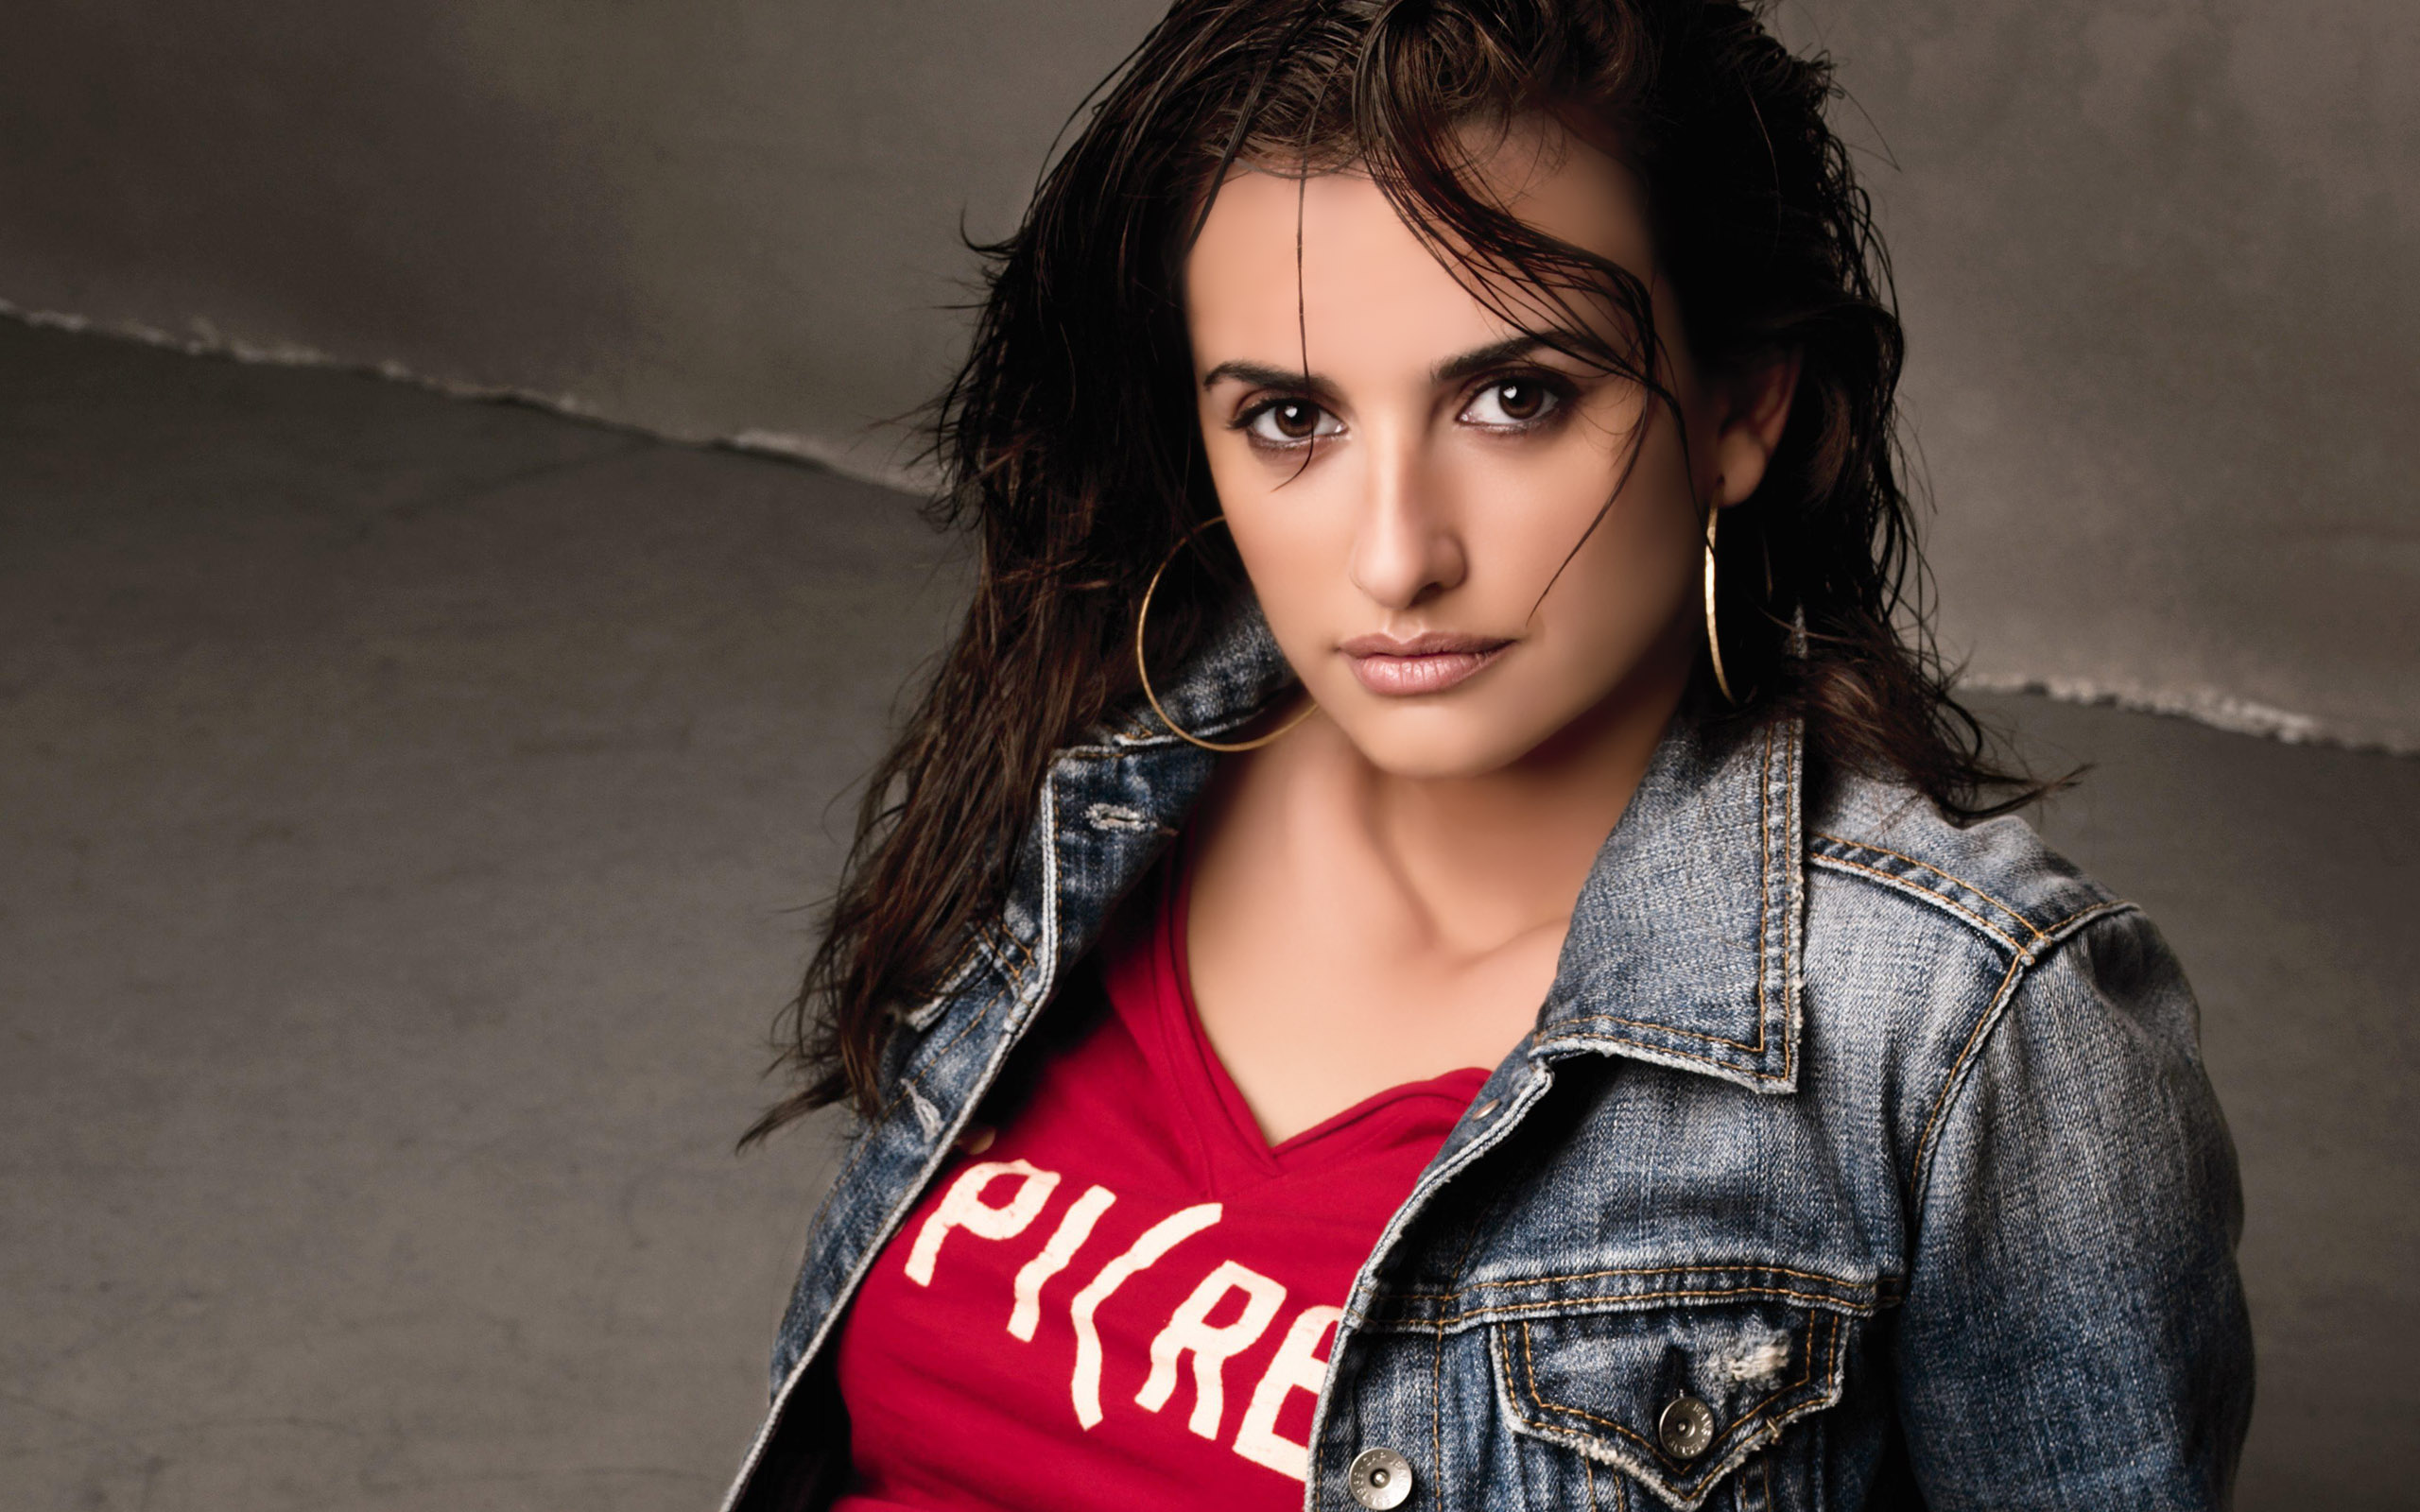 penelope cruz wallpaper 25990